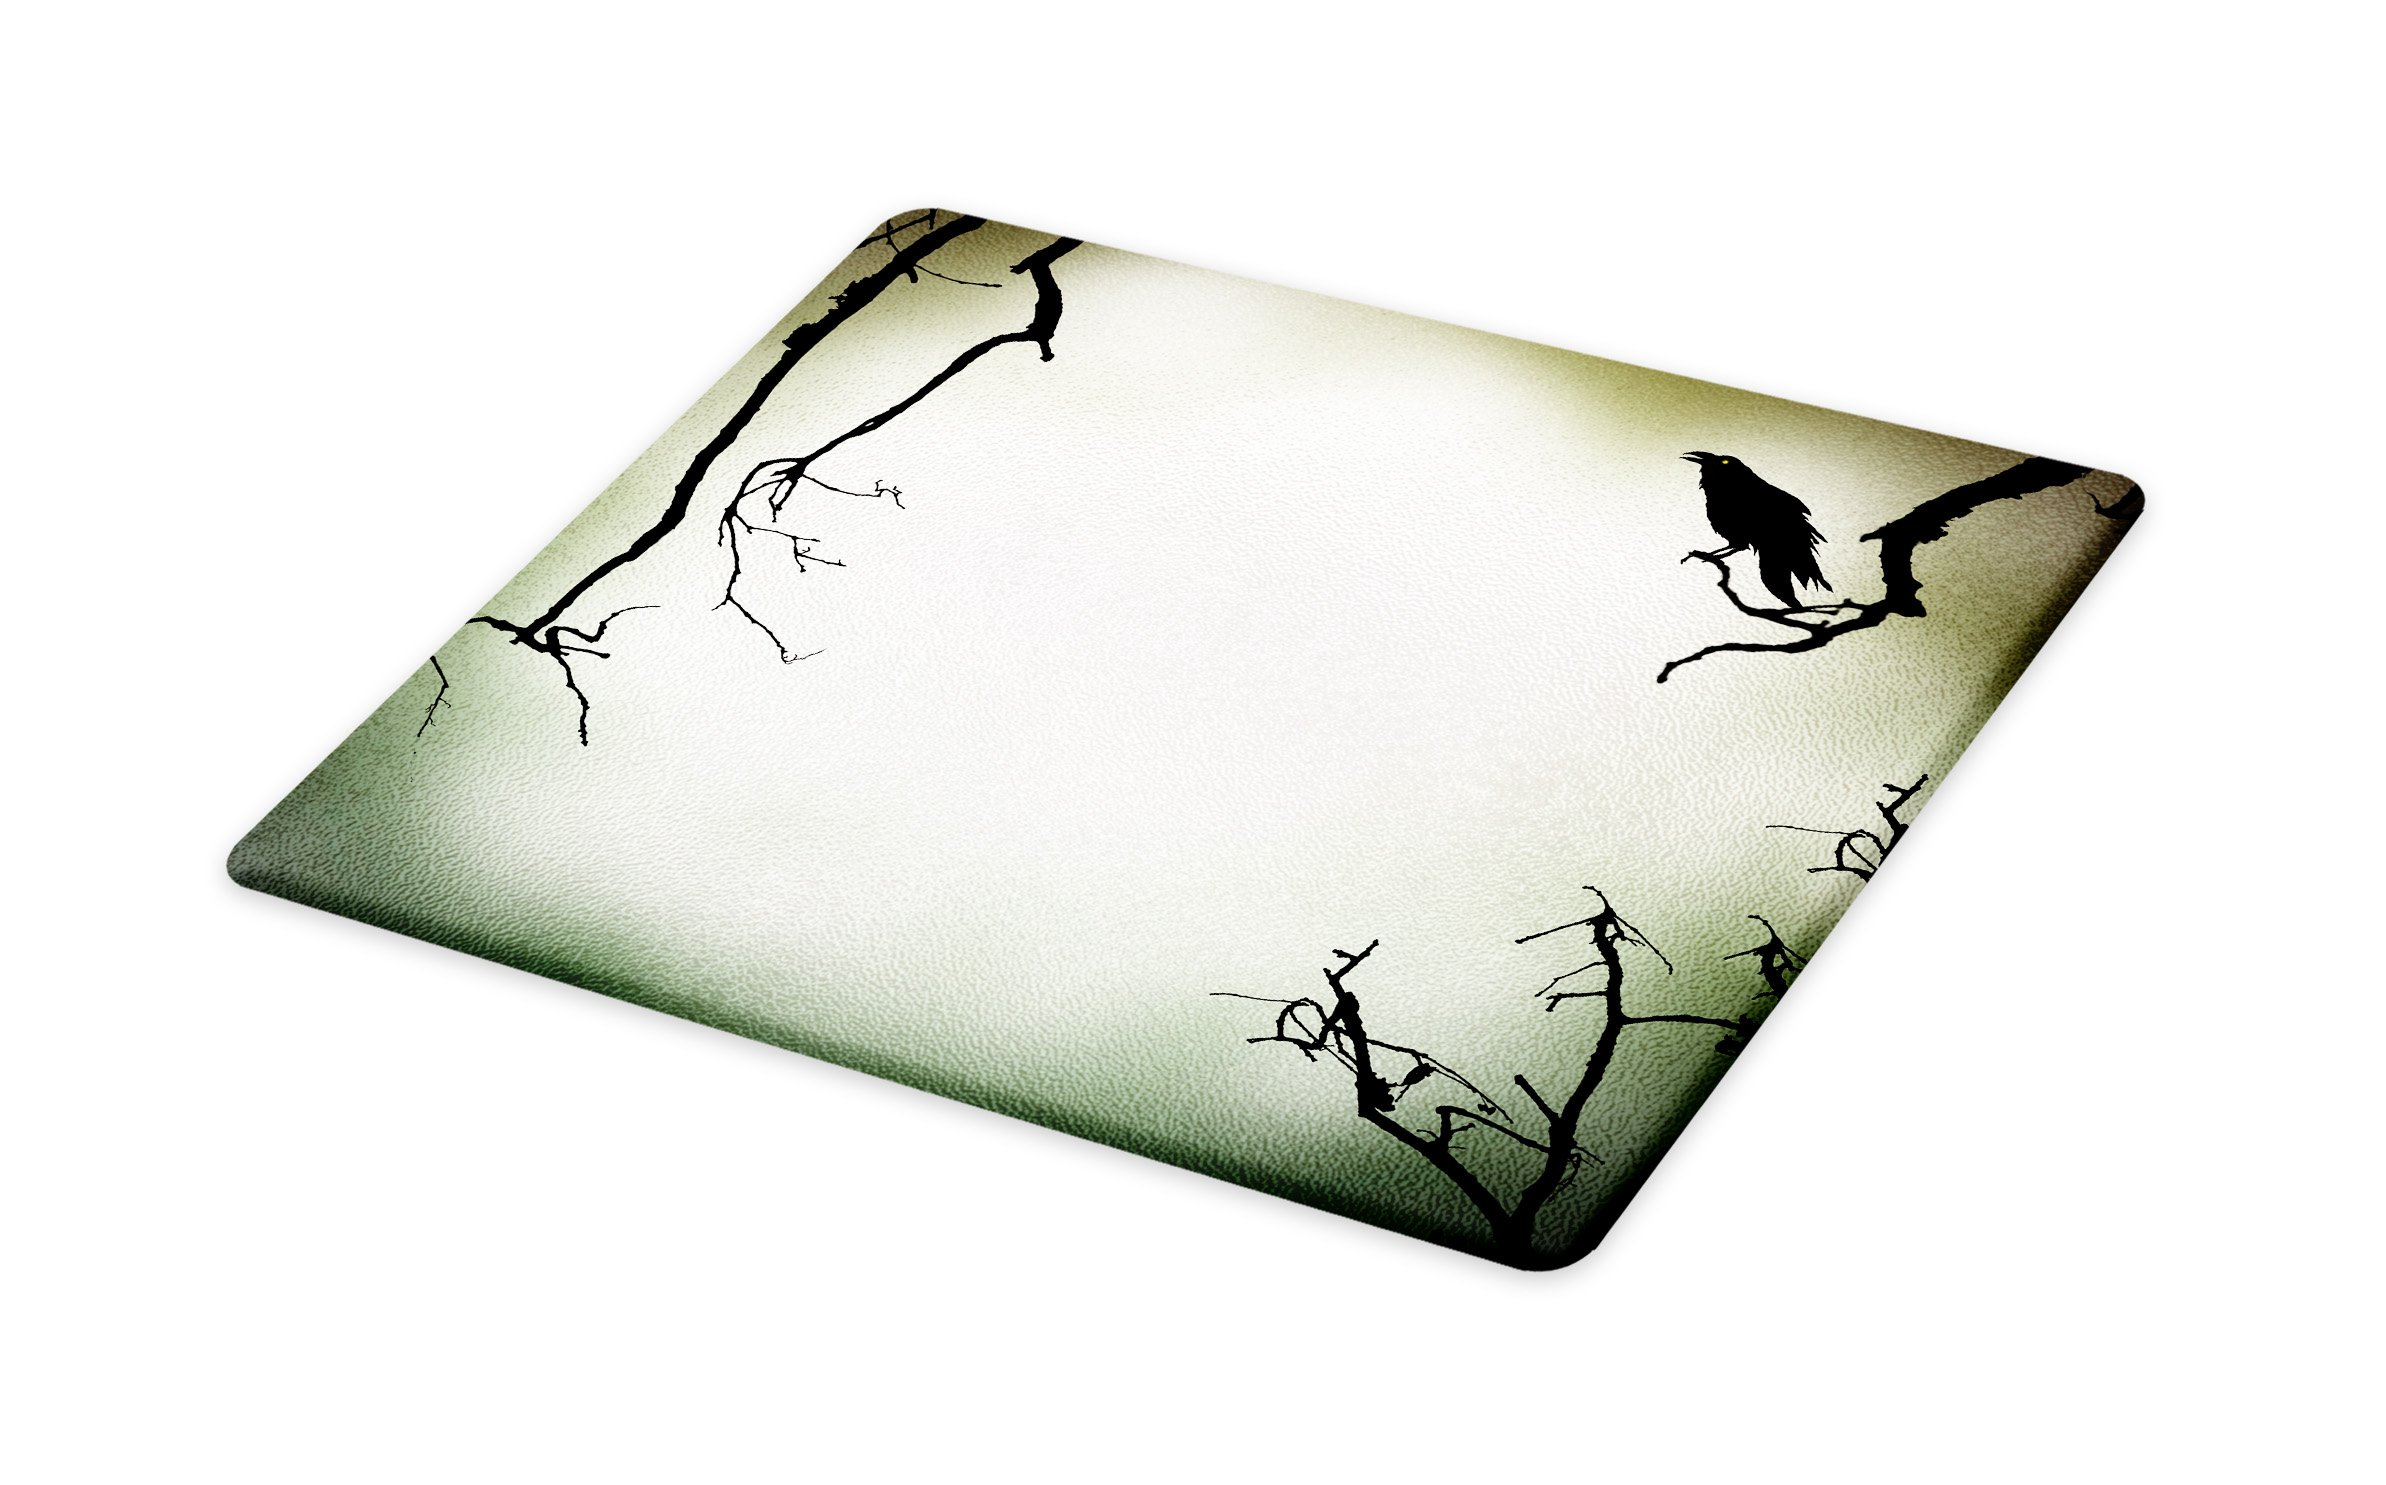 Lunarable Horror House Cutting Board, Crow Bird on Leafless Branch Cemetery Death Spirit Animal Evil Raven Funeral, Decorative Tempered Glass Cutting and Serving Board, Small Size, Sepia Black